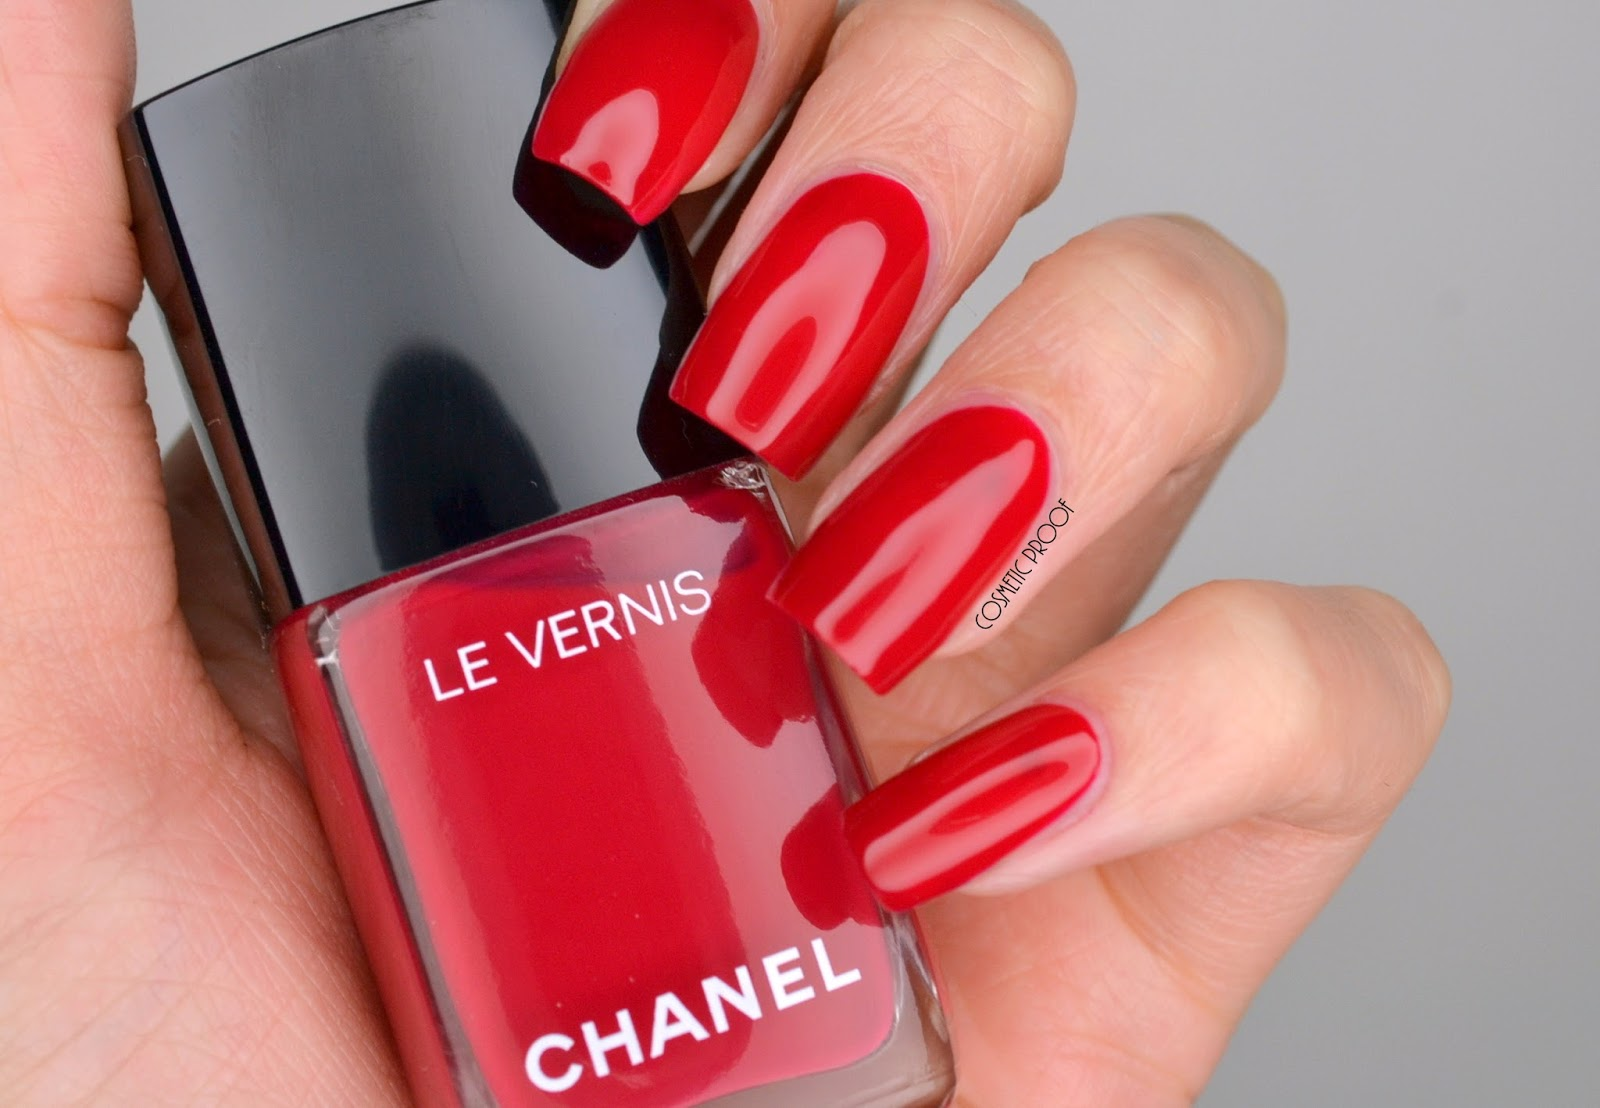 NAILS | *New* Longwear Nail Colour Chanel #508 Shantung Swatch ...